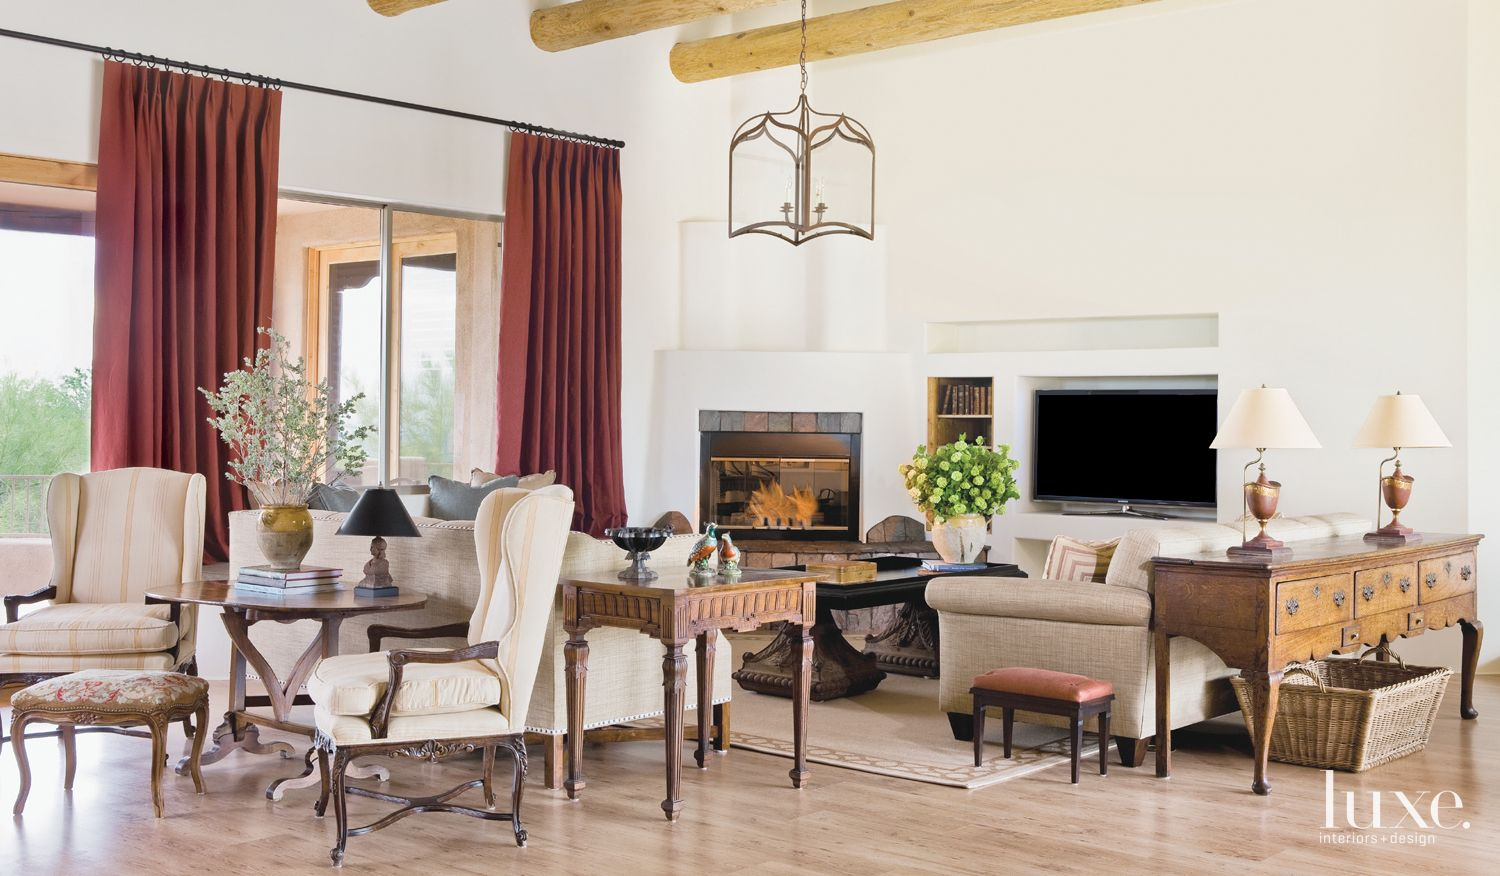 Country Cream Living Room with Rustic Finishes